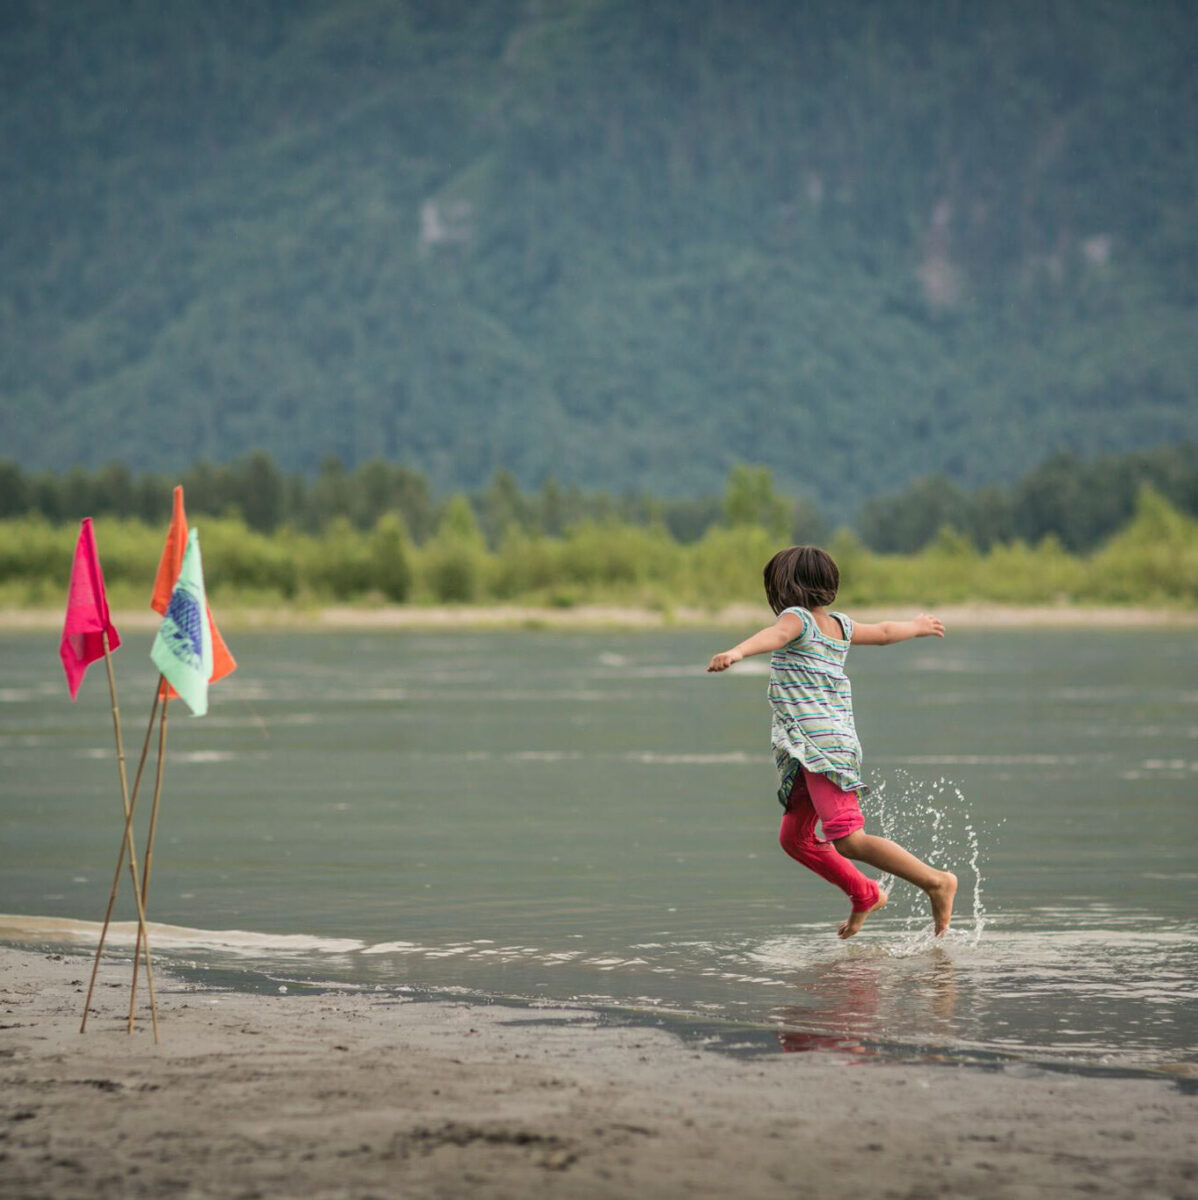 A young person jumps and plays splashing water in the Fraser River.